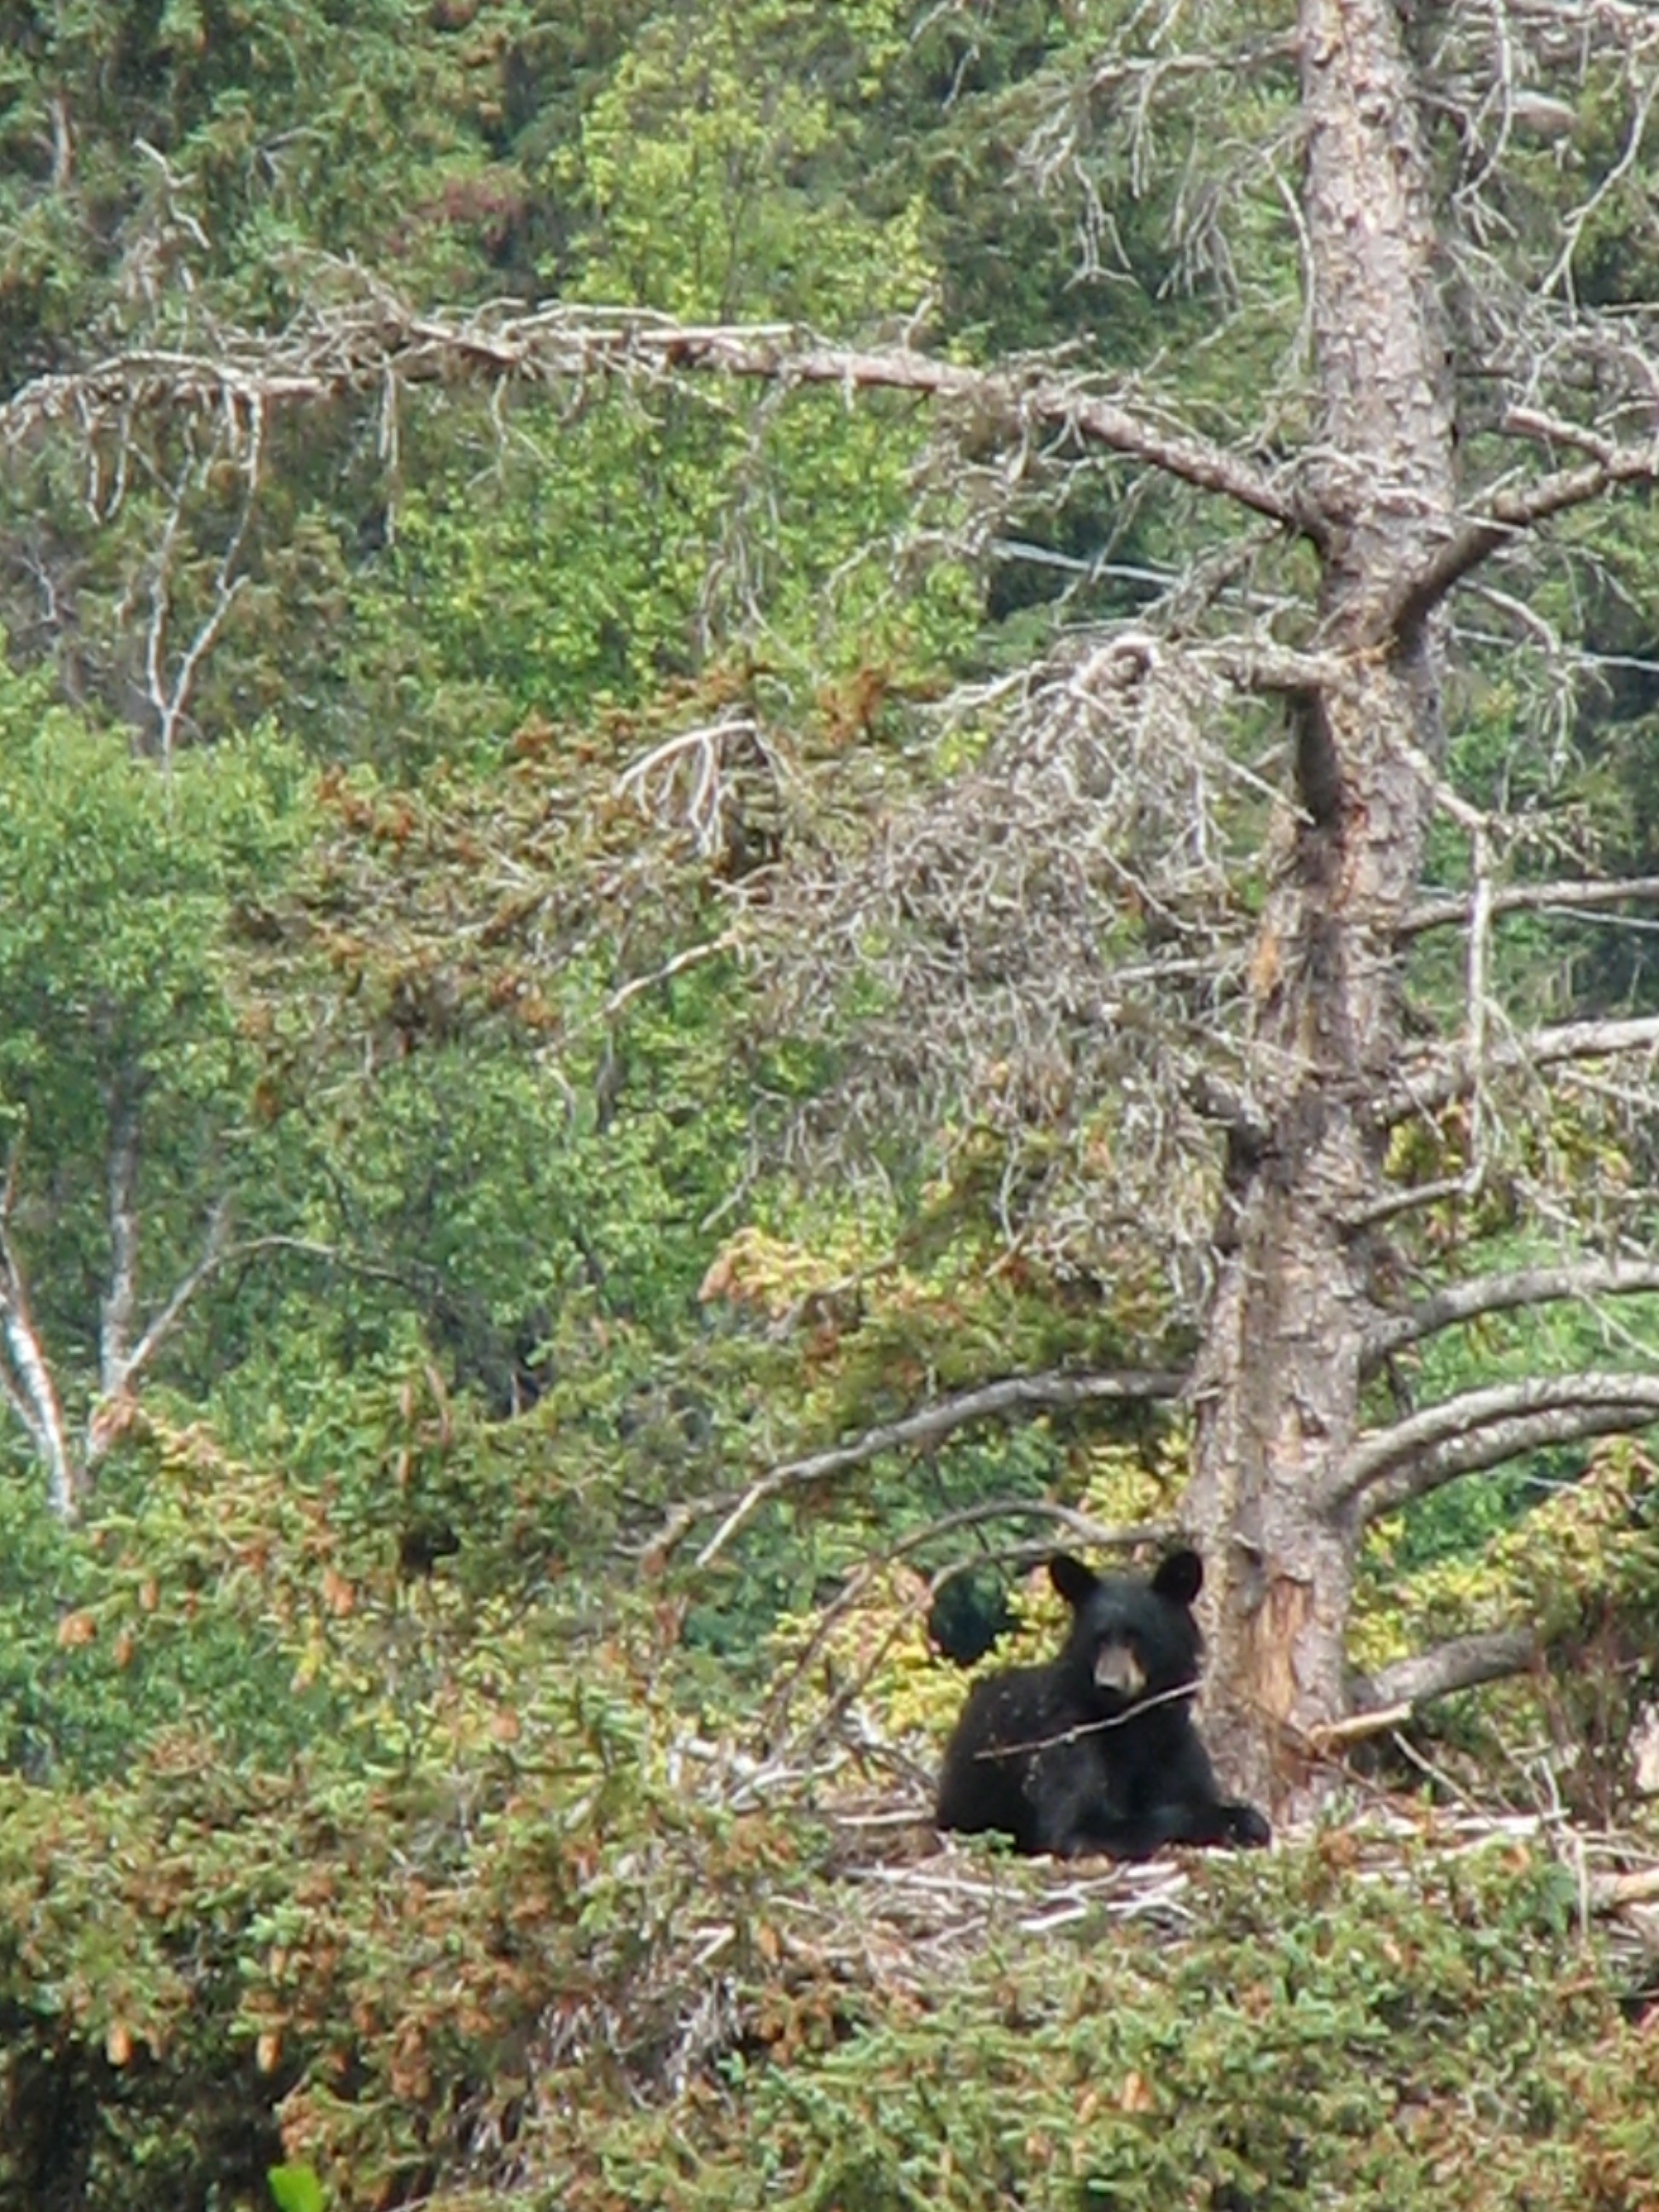 Black Bear in the Eagle Nest